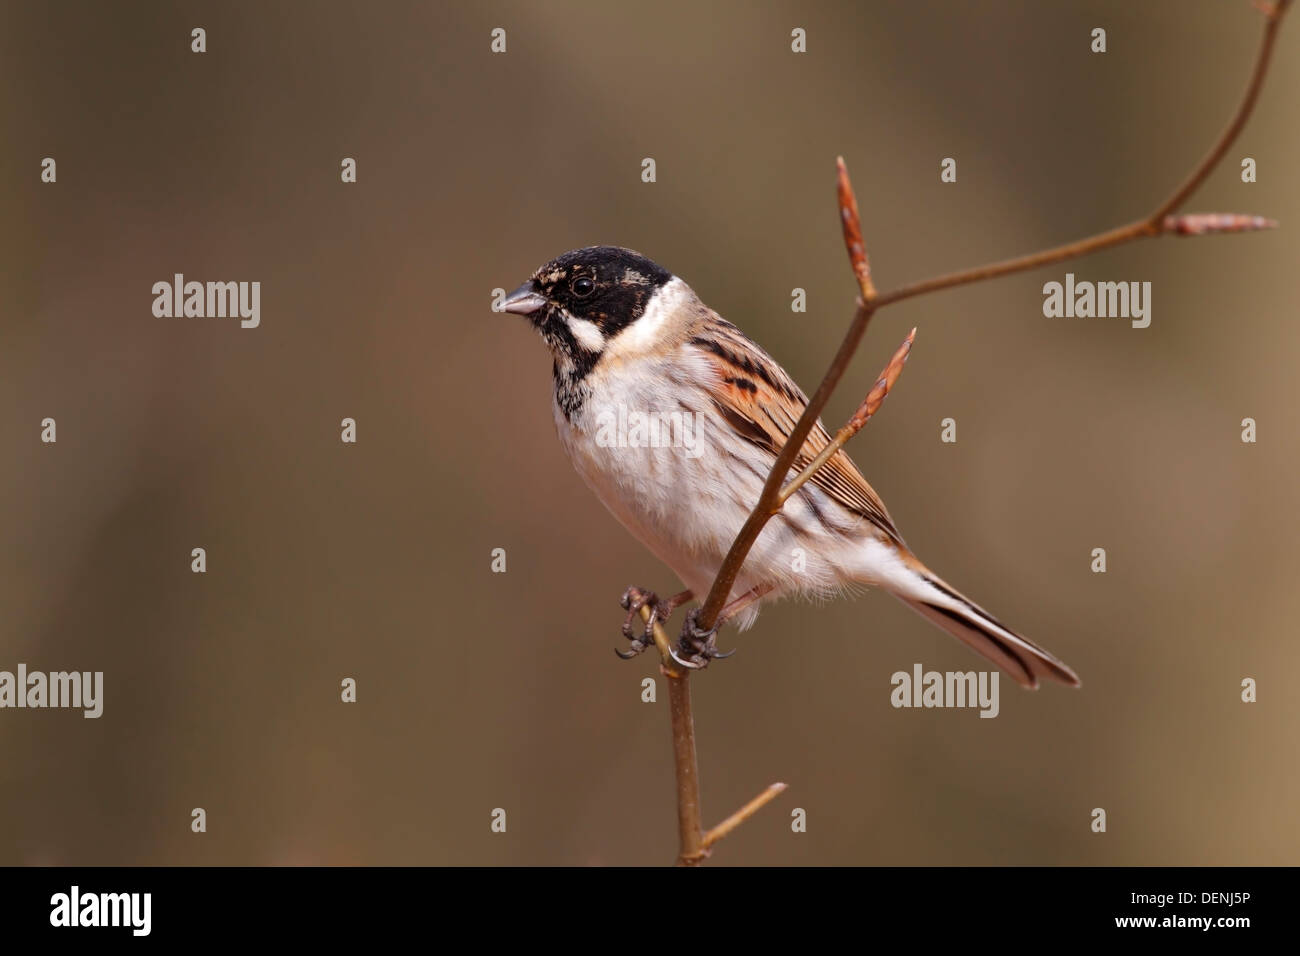 common reed bunting (Emberiza schoeniclus) adult male perched on branch, Norfolk, England, United Kingdom - Stock Image